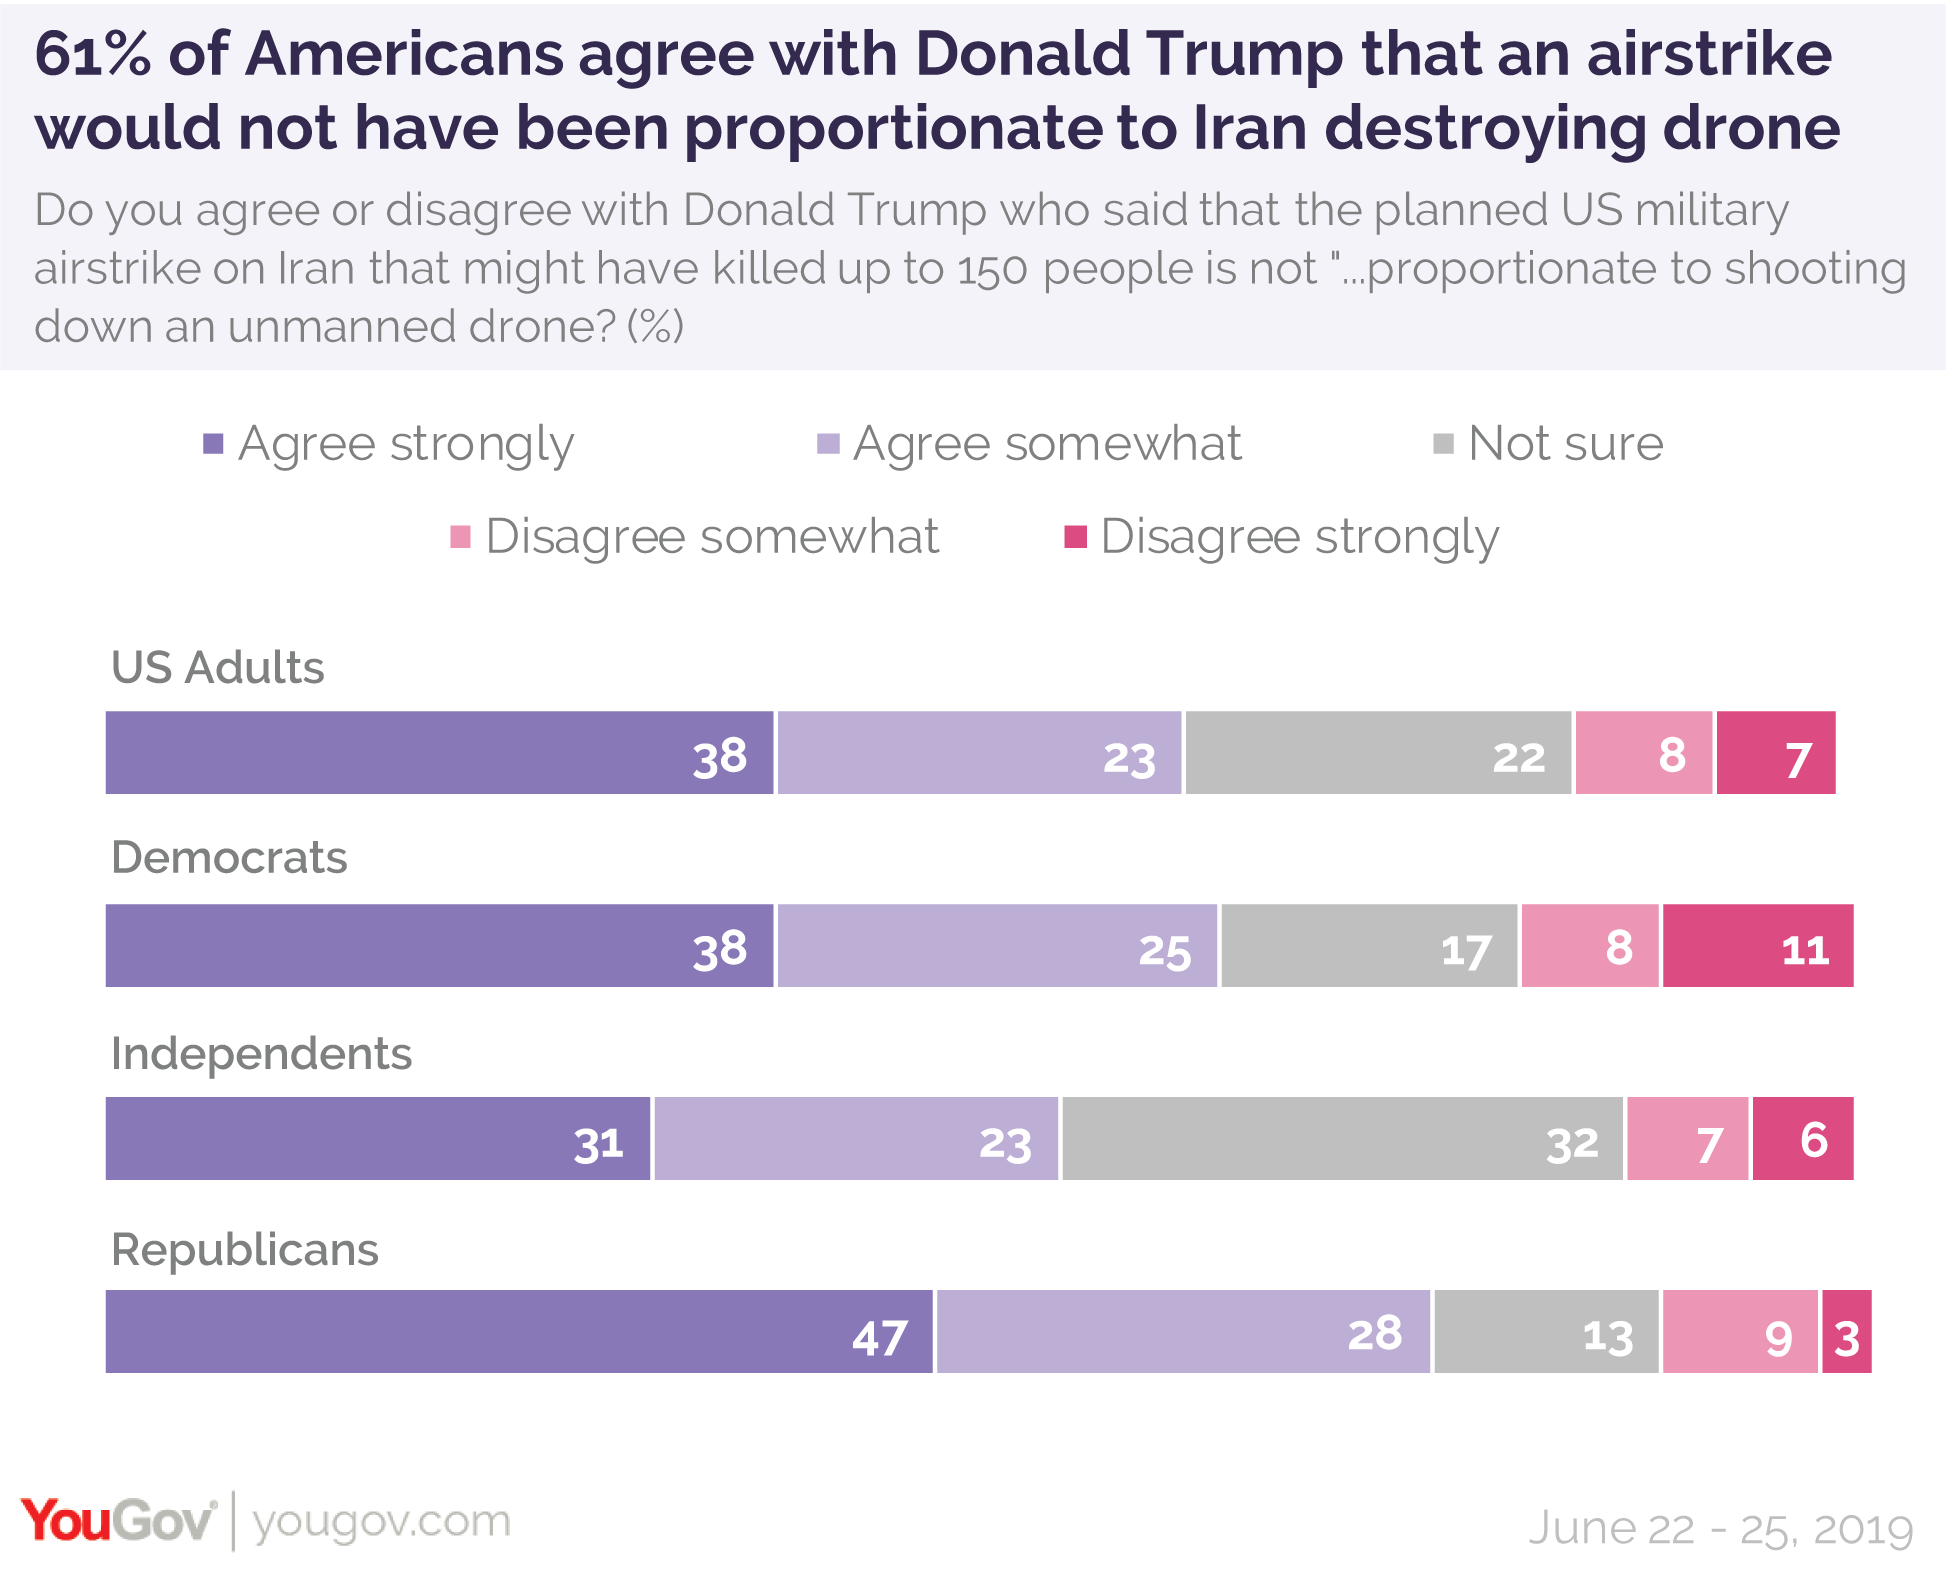 61% of Americans agree with Donald Trump that an airstrike would not have been proportionate to Iran destroying drone